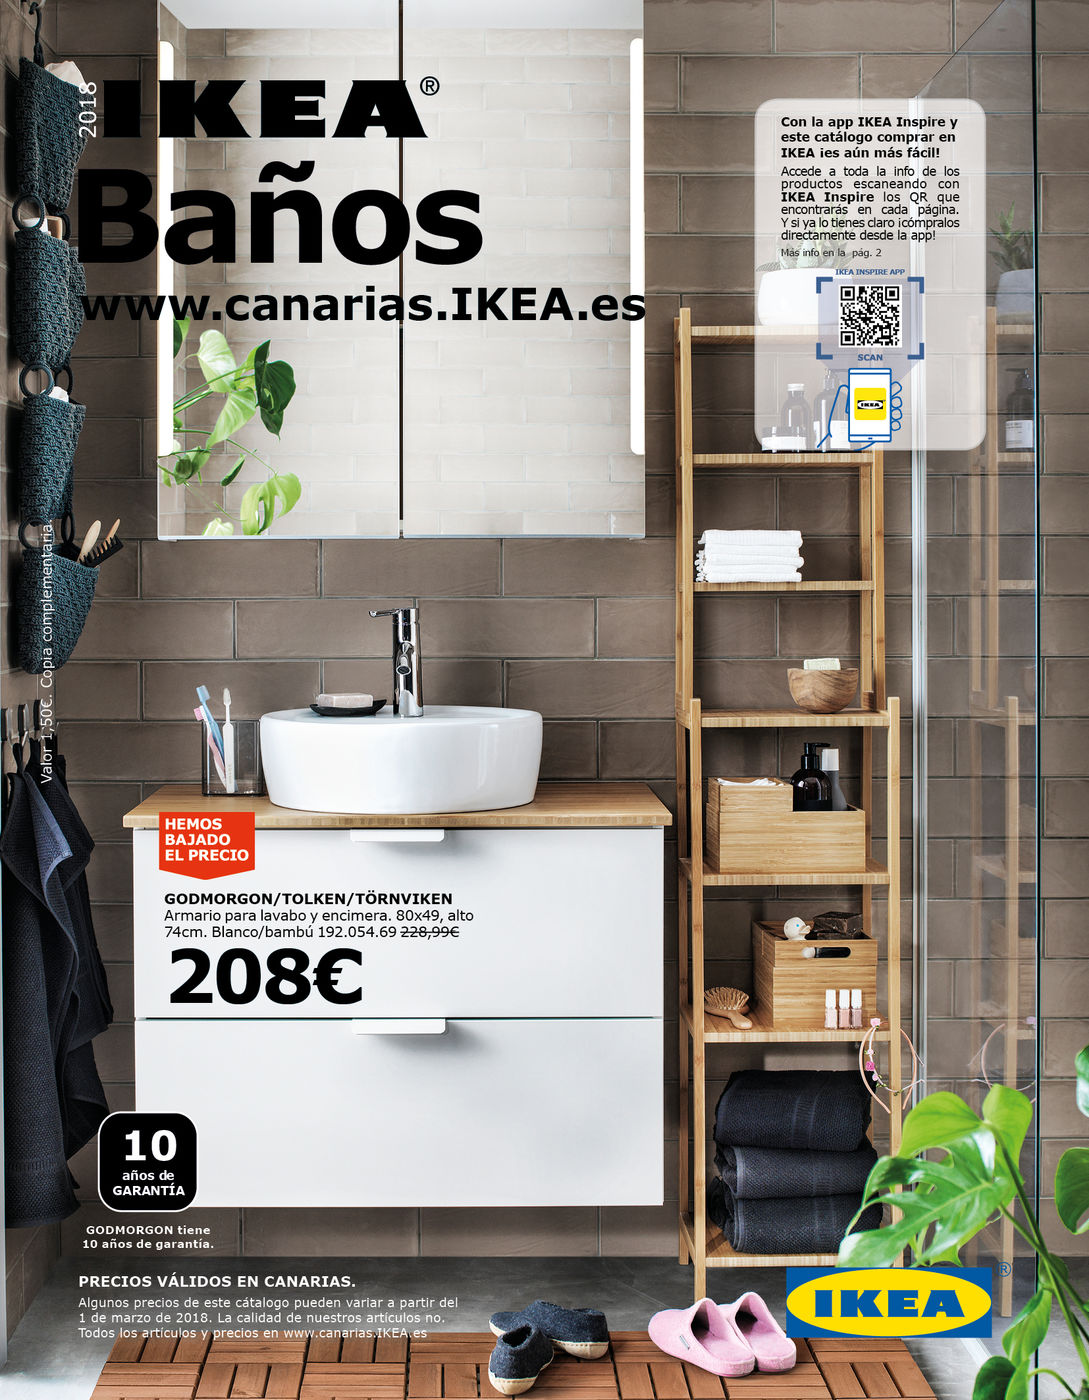 Catalogo Banos 2018 Can